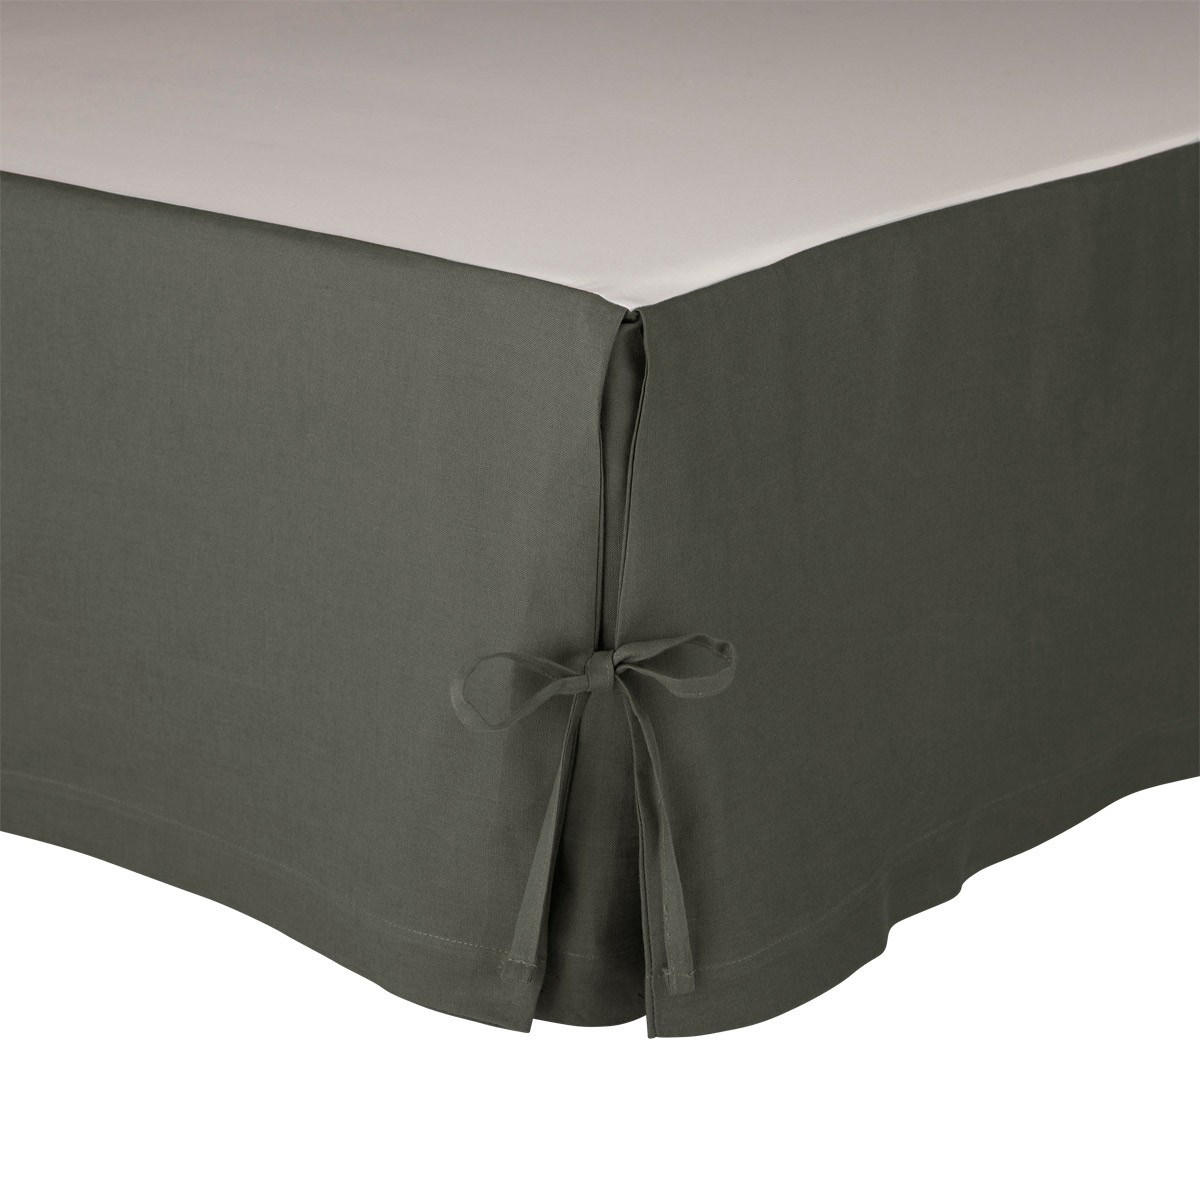 Cache sommier Lin Anthracite 160 x 200 cm (photo)